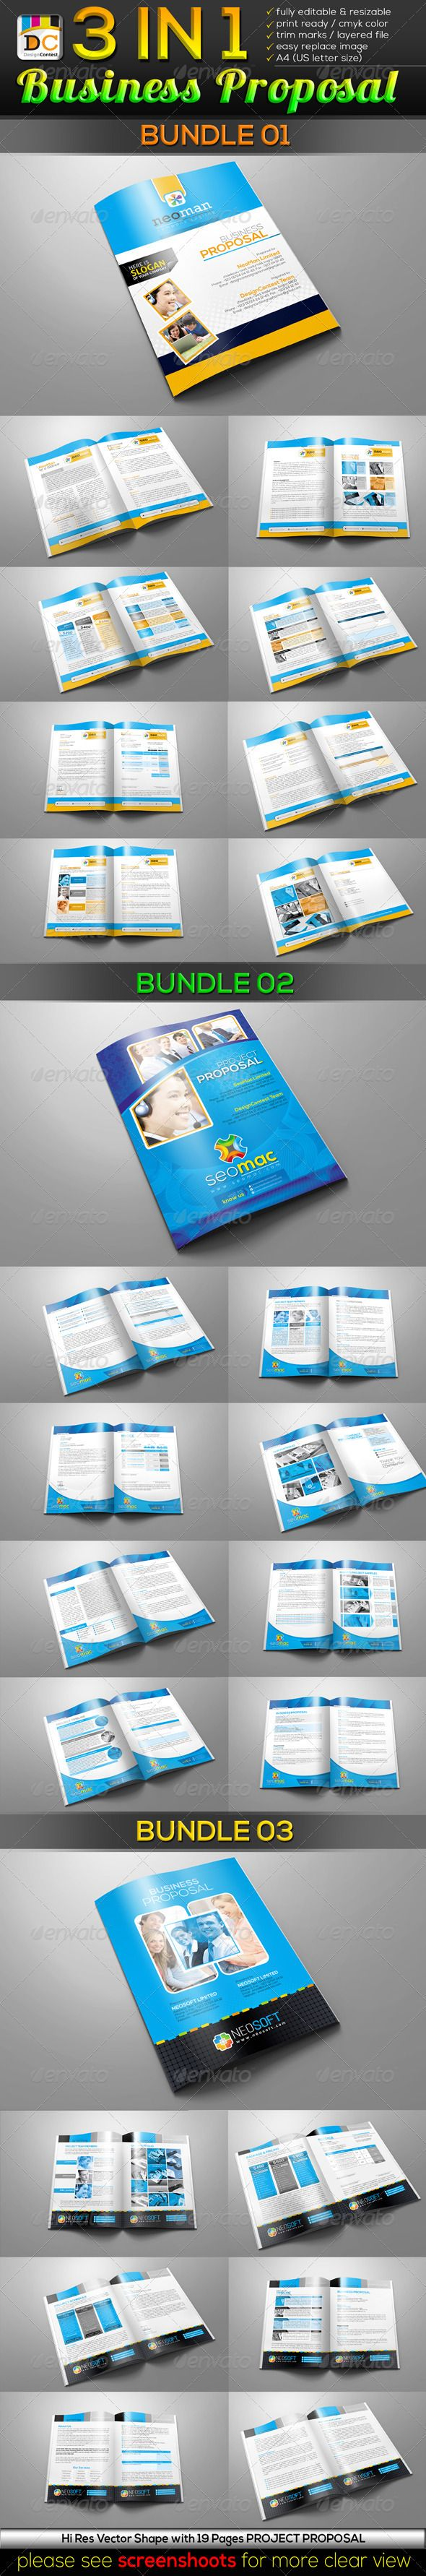 3 in 1 Business/Project Proposal Bundle